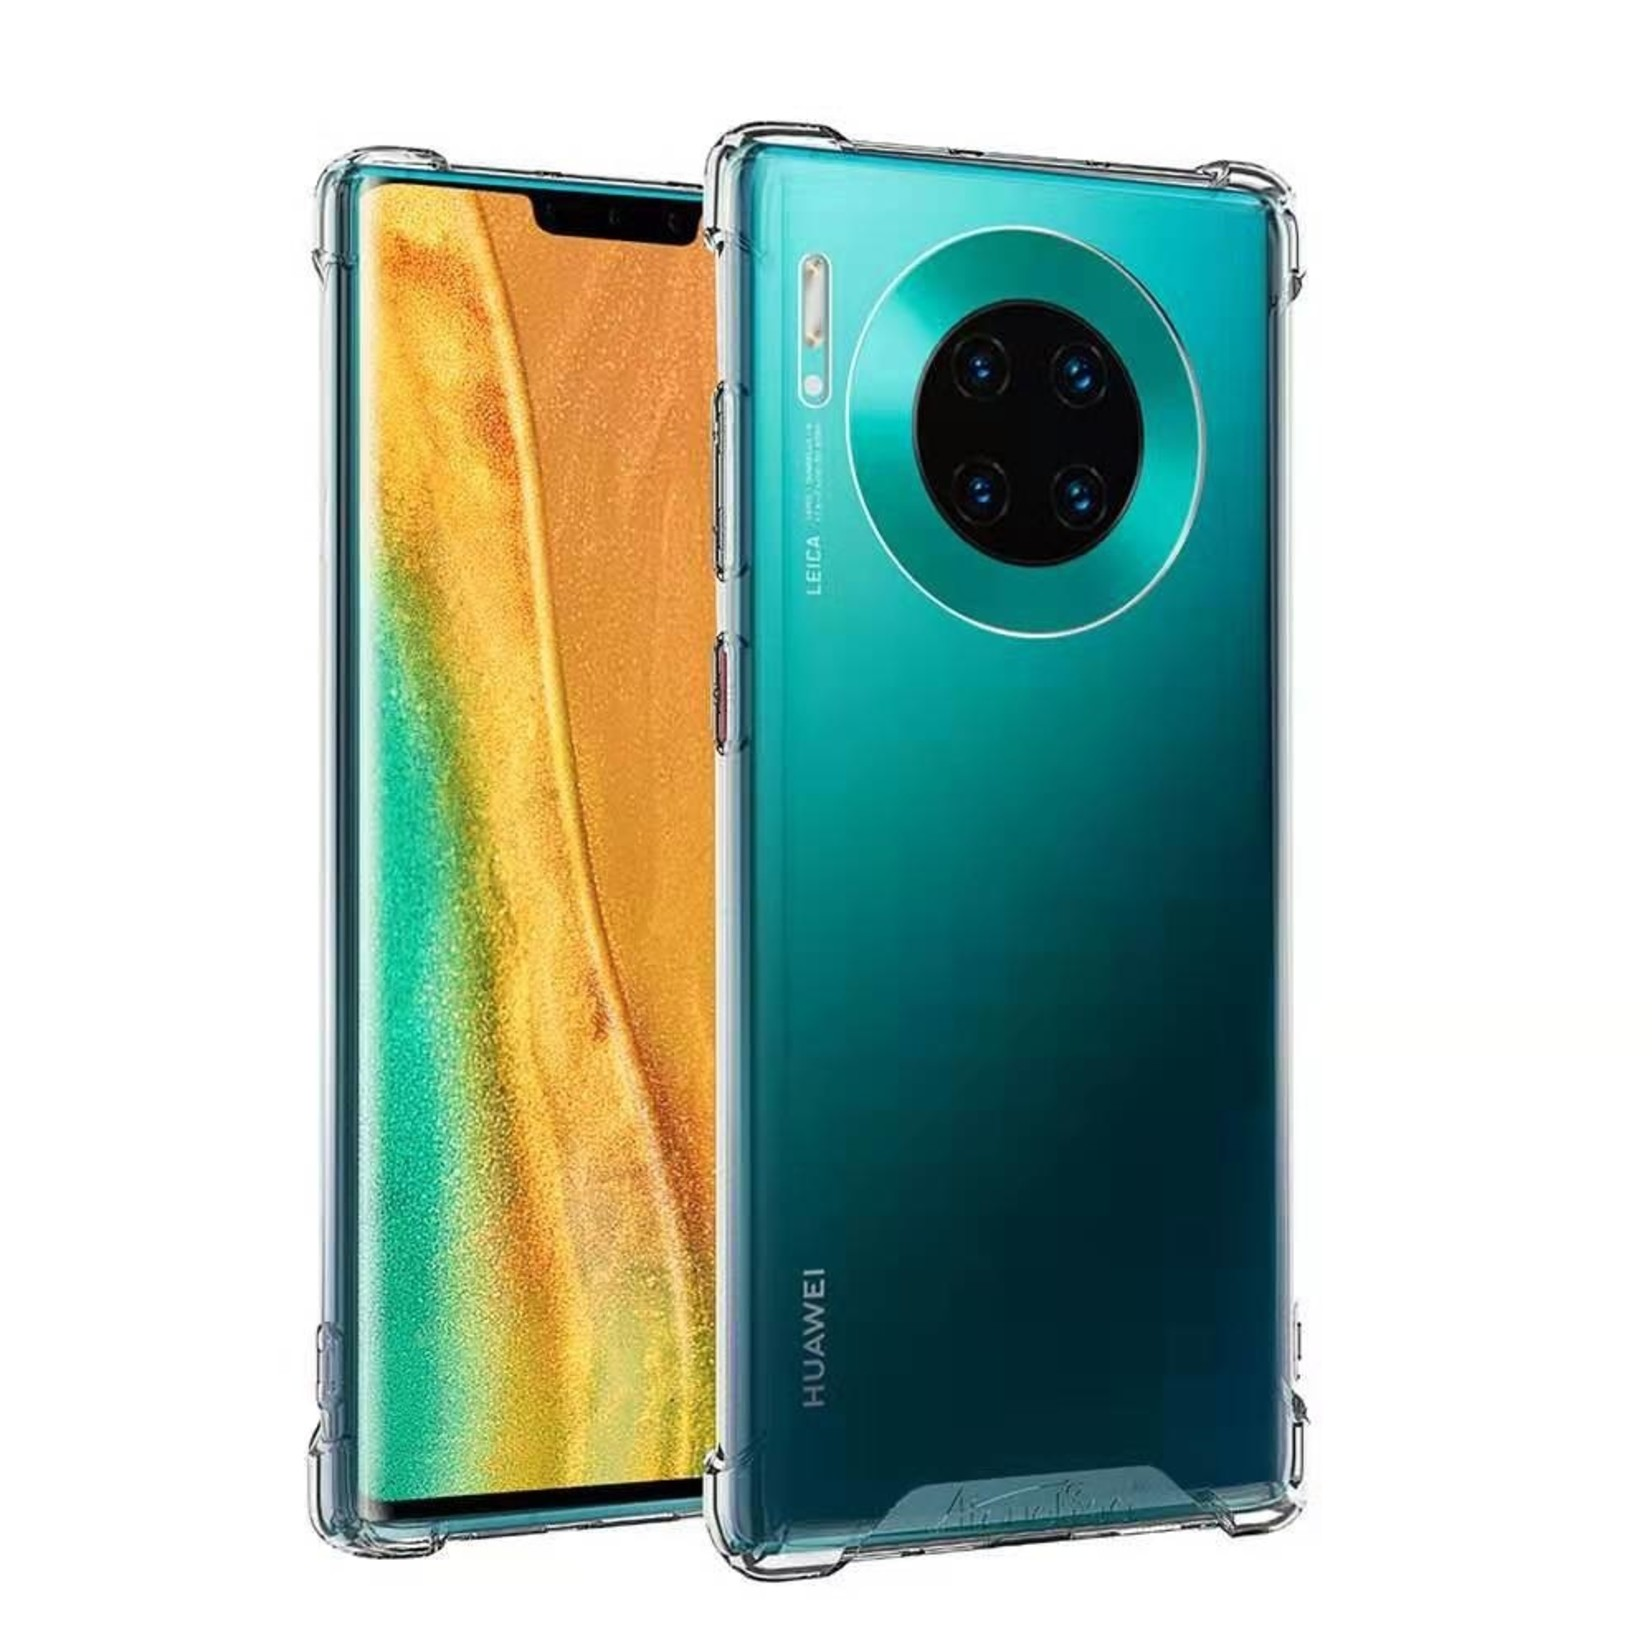 Atouchbo Backcover Anti-Shock TPU + PC voor Huawei Mate 30 Transparant